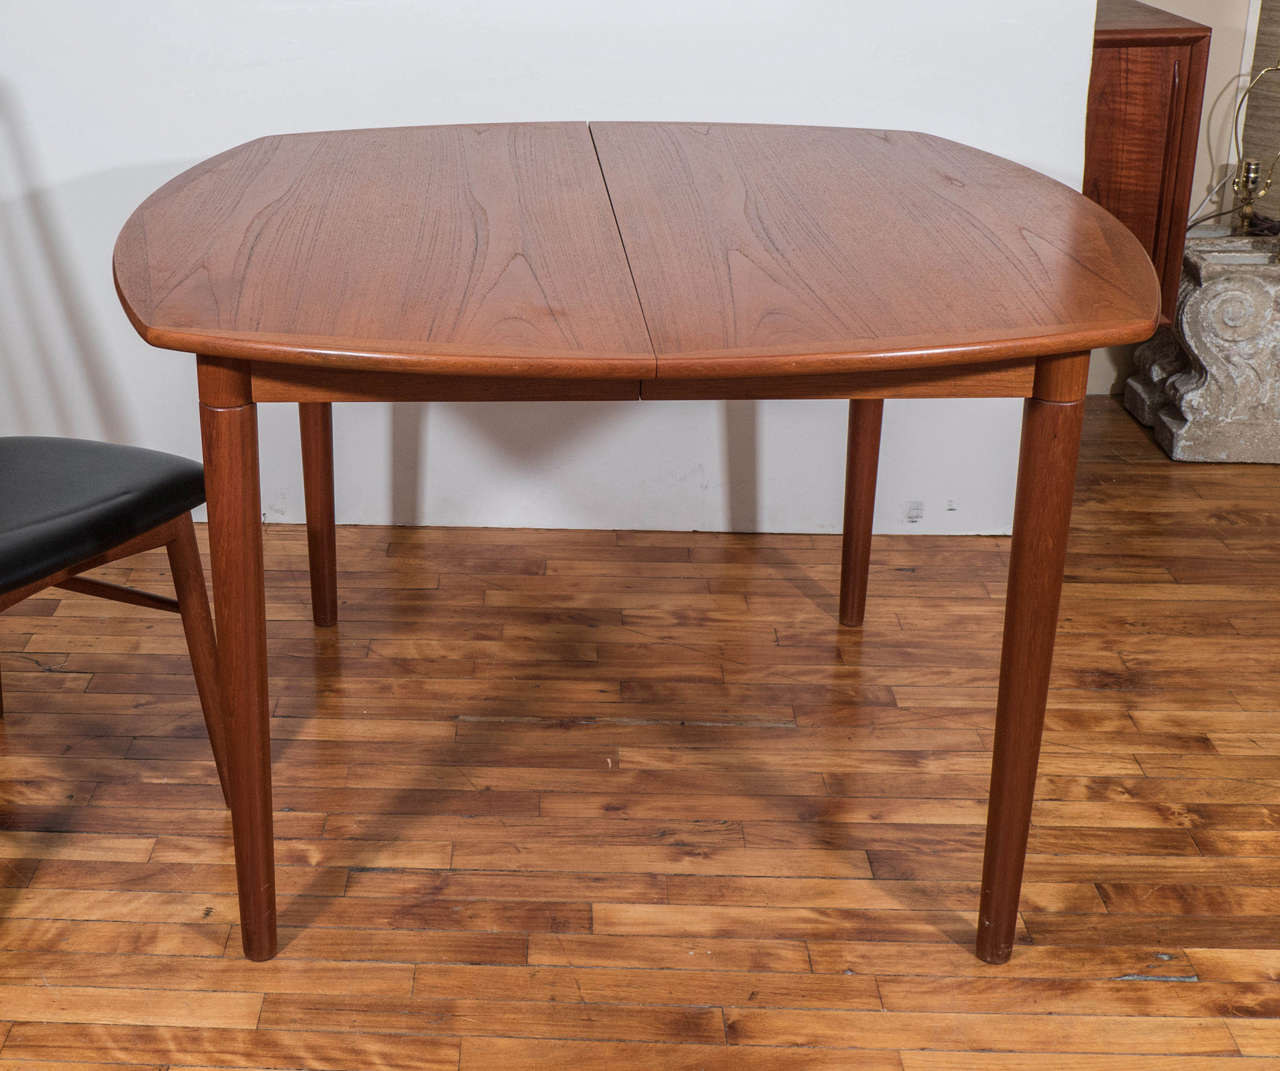 Teak extension dining table in excellent condition very clean and - Mid Century Koefoeds Hornslet Teak Extension Dining Table 2